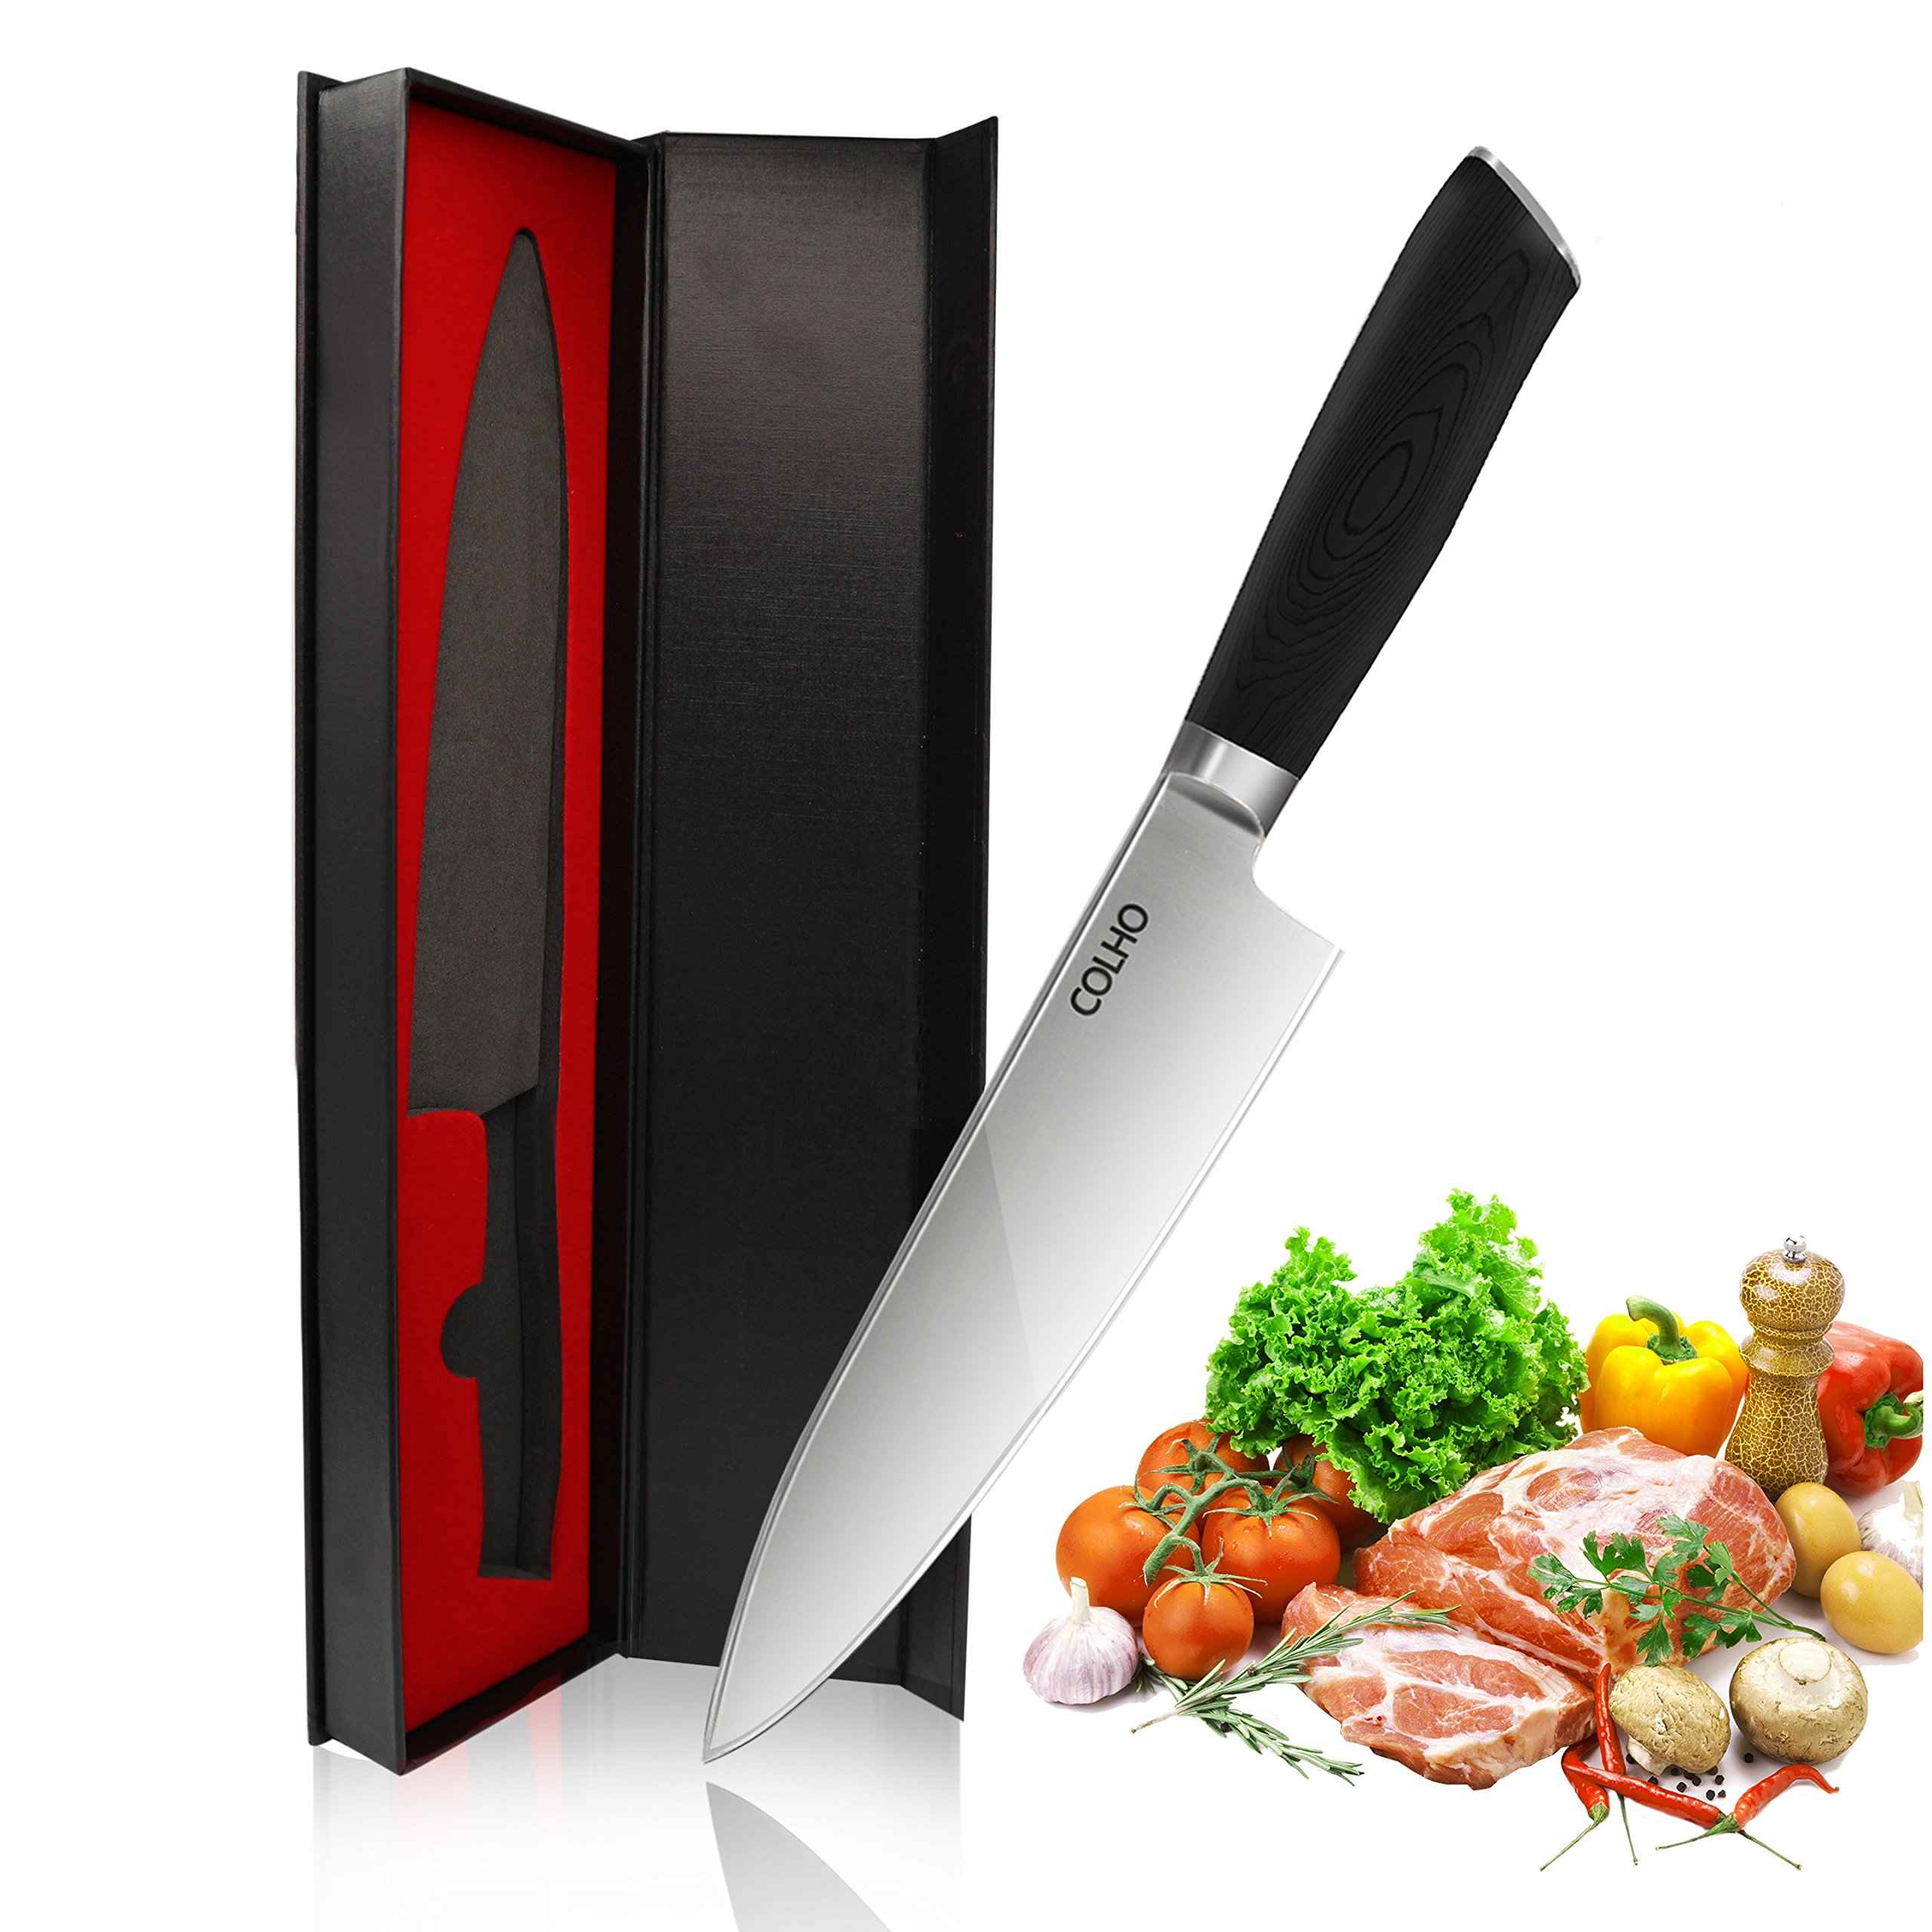 COLHO 8 inch Chef Knife, Dishwasher Safe Ergonomic G10 Handle, Pro Kitchen Knife High Carbon Stainless Steel Sharp Knives Blade